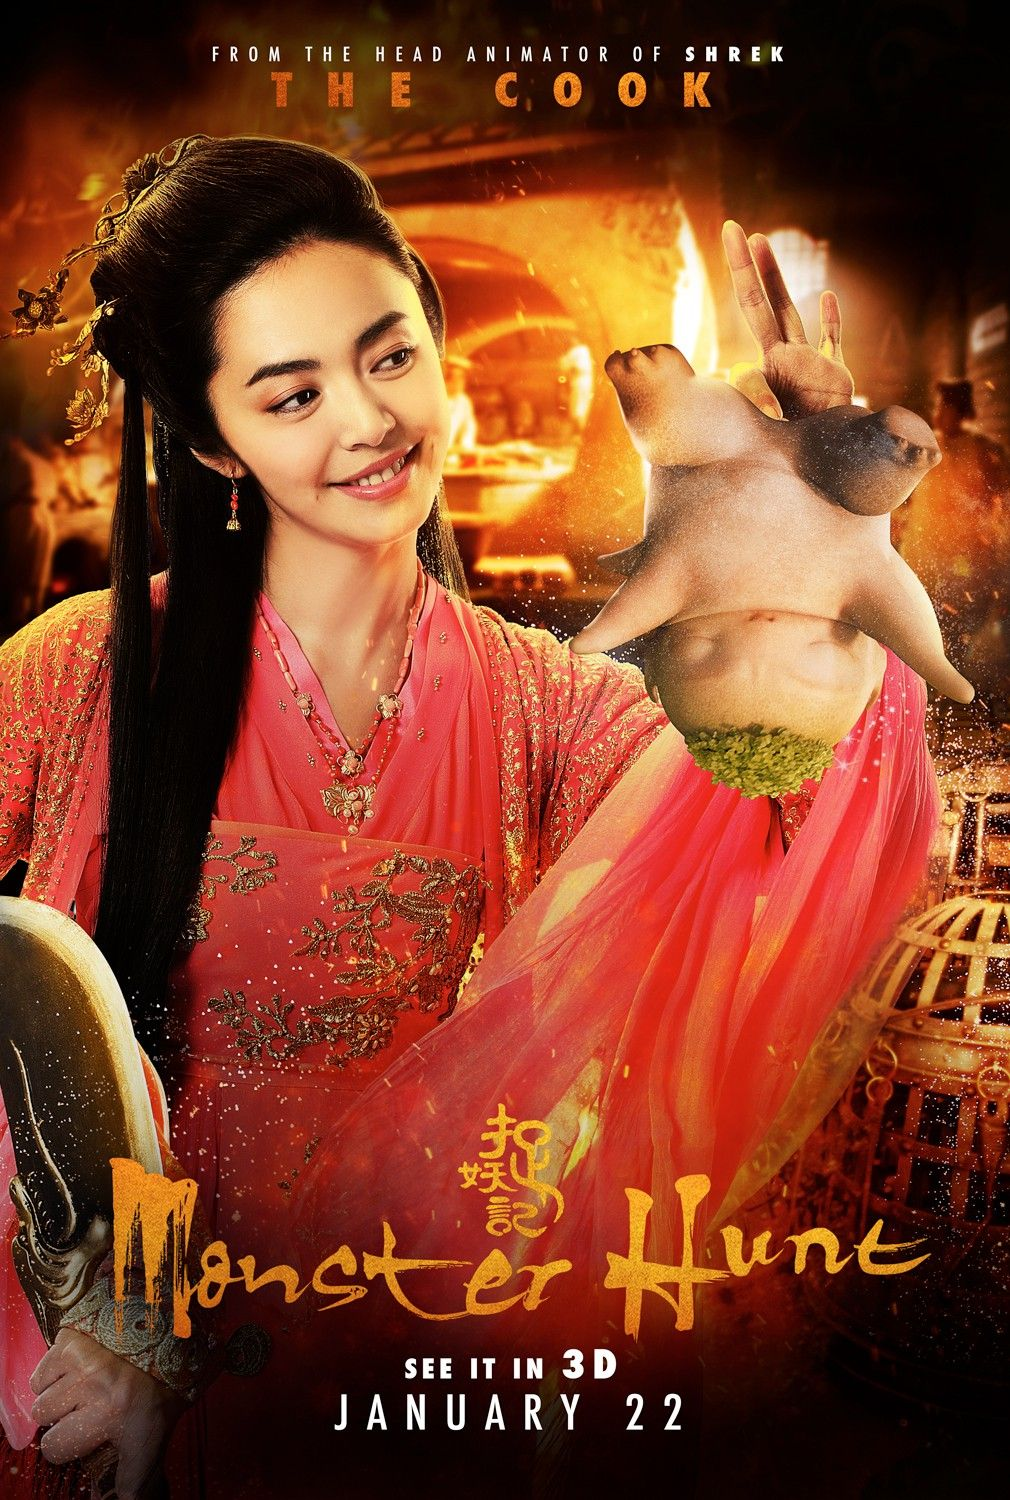 Monster Hunt Monster Hunt Full Movies Online Free Free Movies